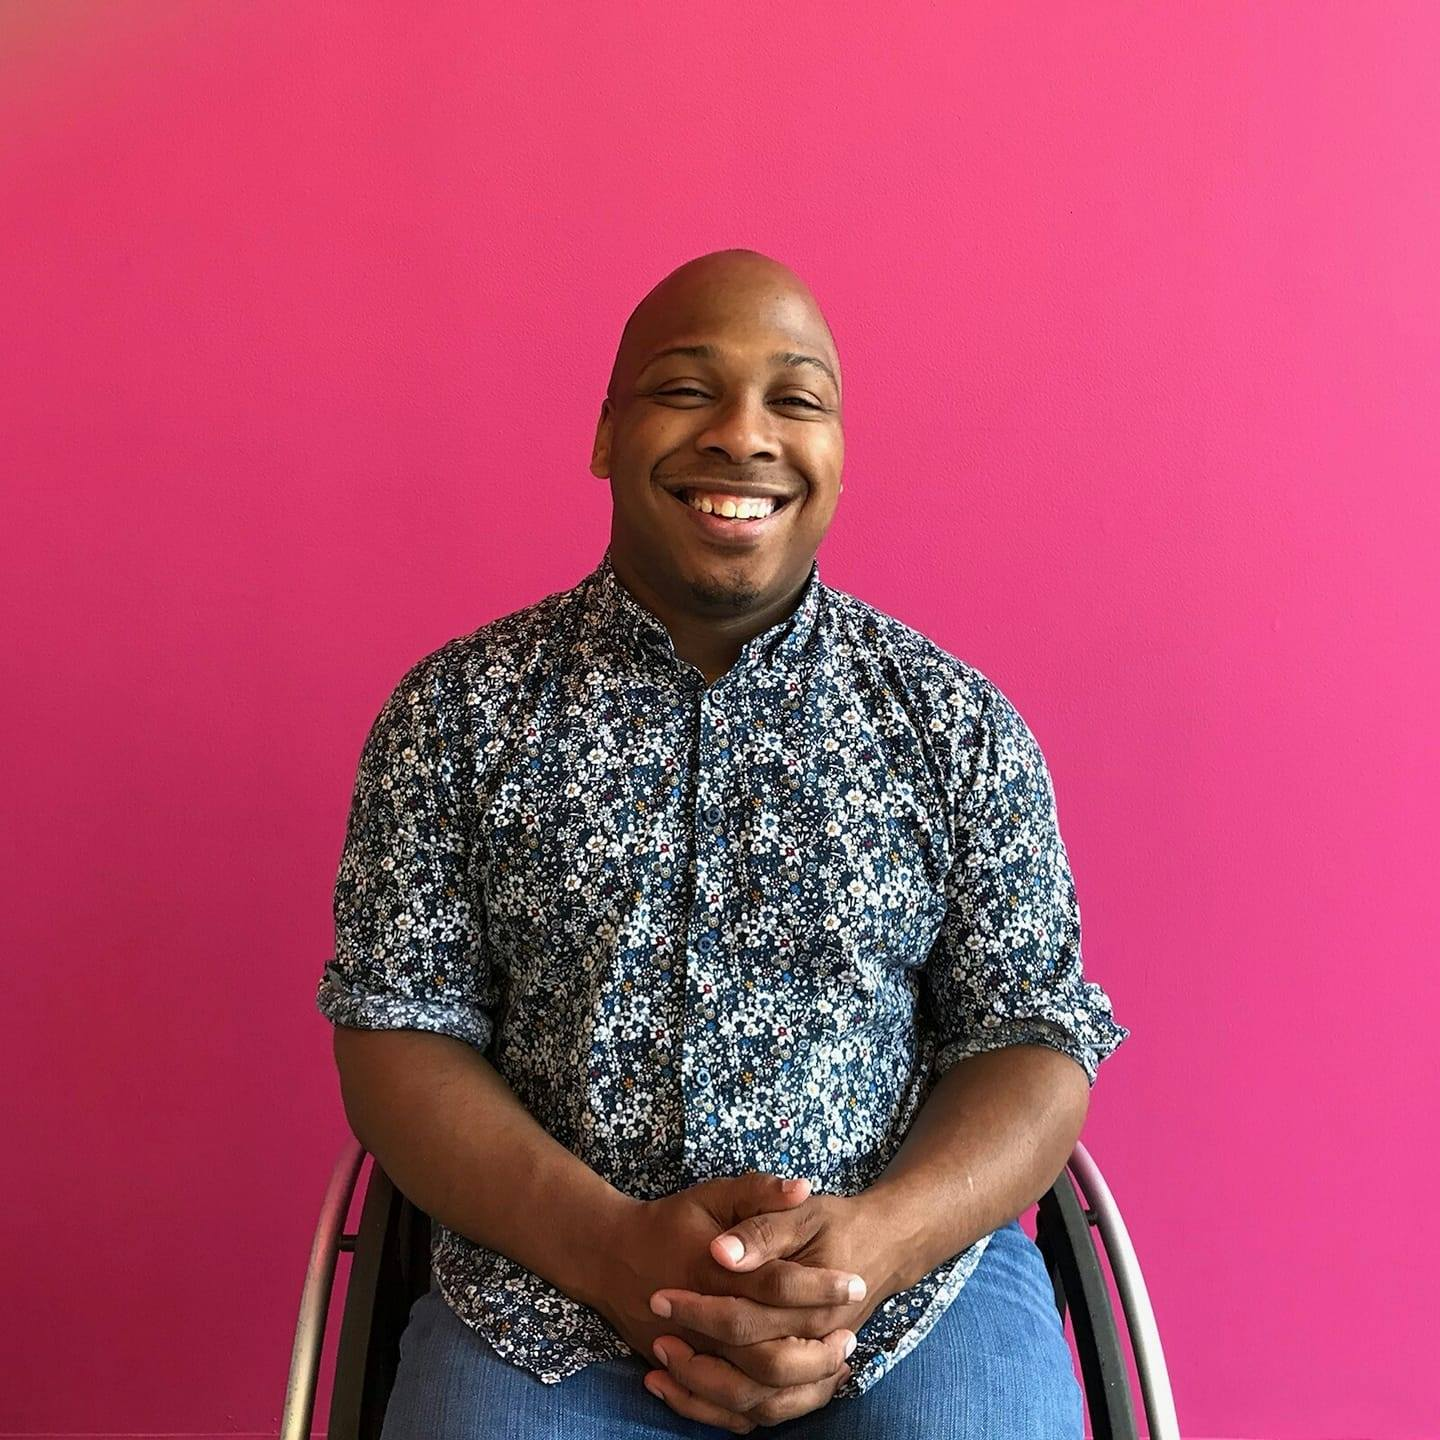 Patrick, a young black man, sits in wheelchair, hands folded, bright pink background